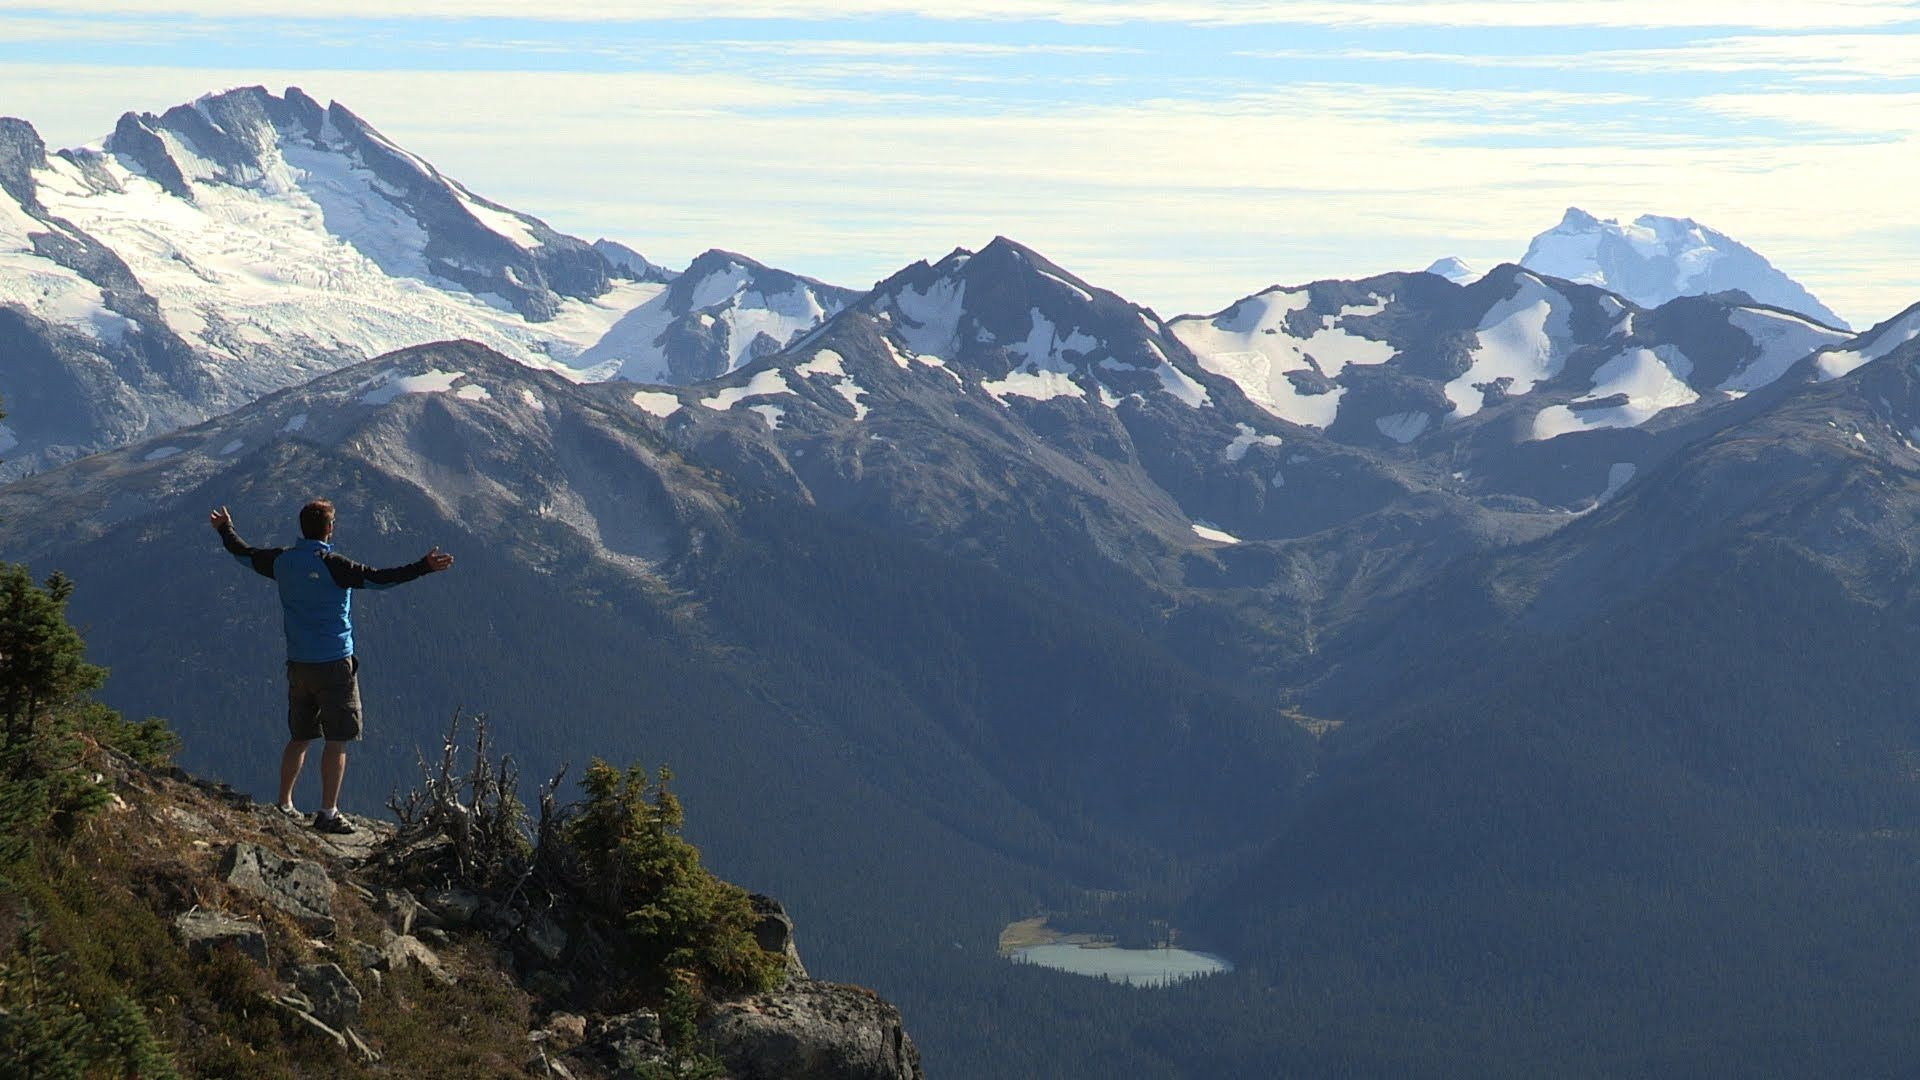 Summer Outdoor Adventures In Whistler Bungee Mountain Bike Hike Raft ATV Kite Boarding A Breathtaking Setting